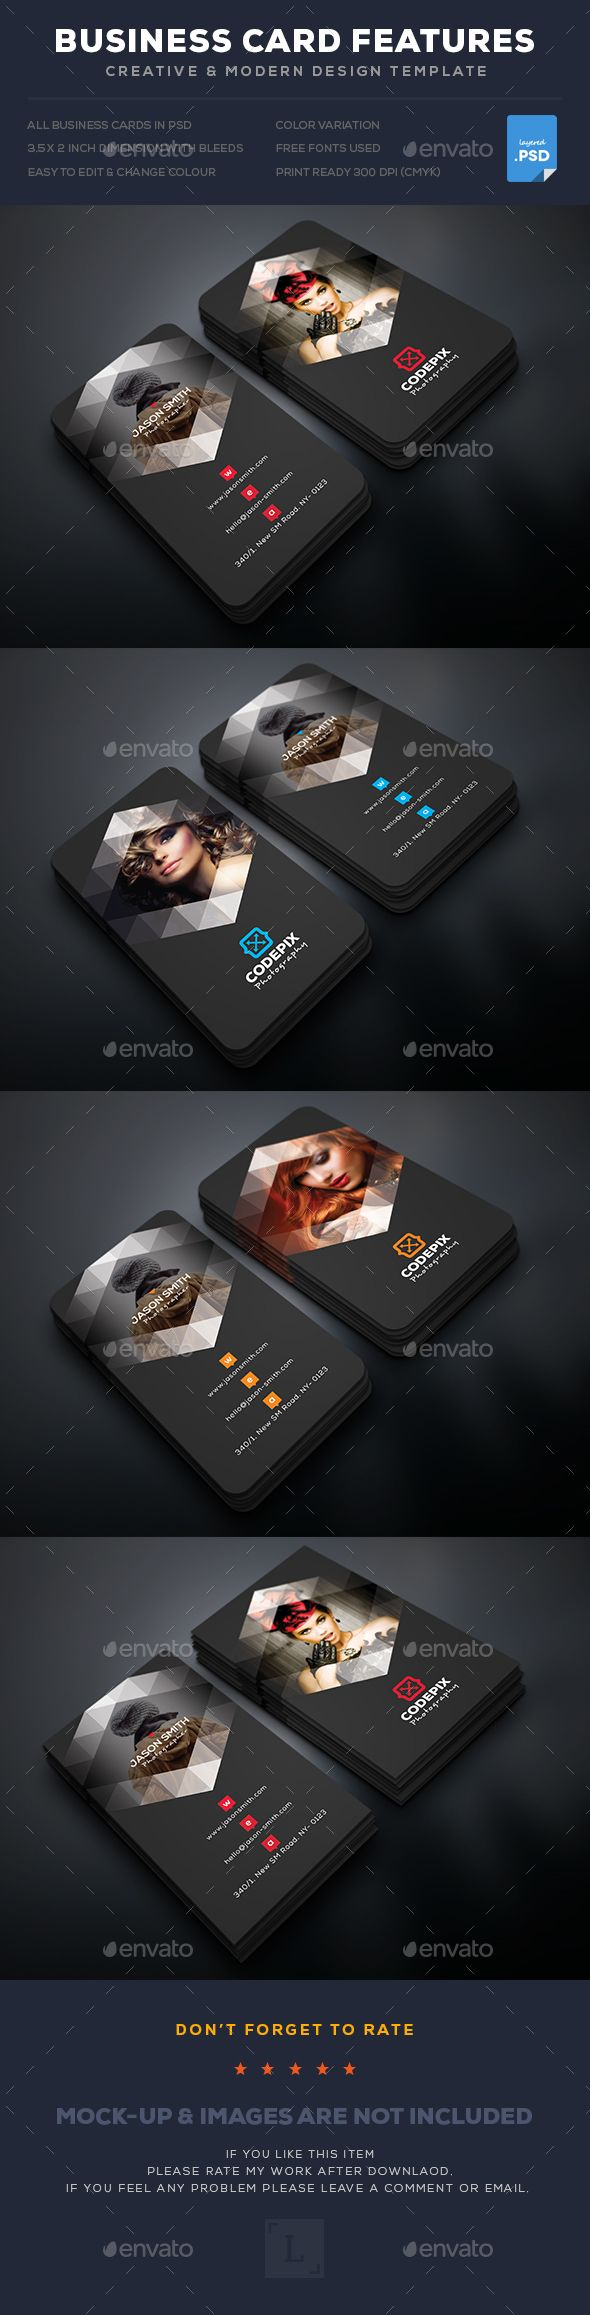 366 best Business card Design images on Pinterest | Business card ...